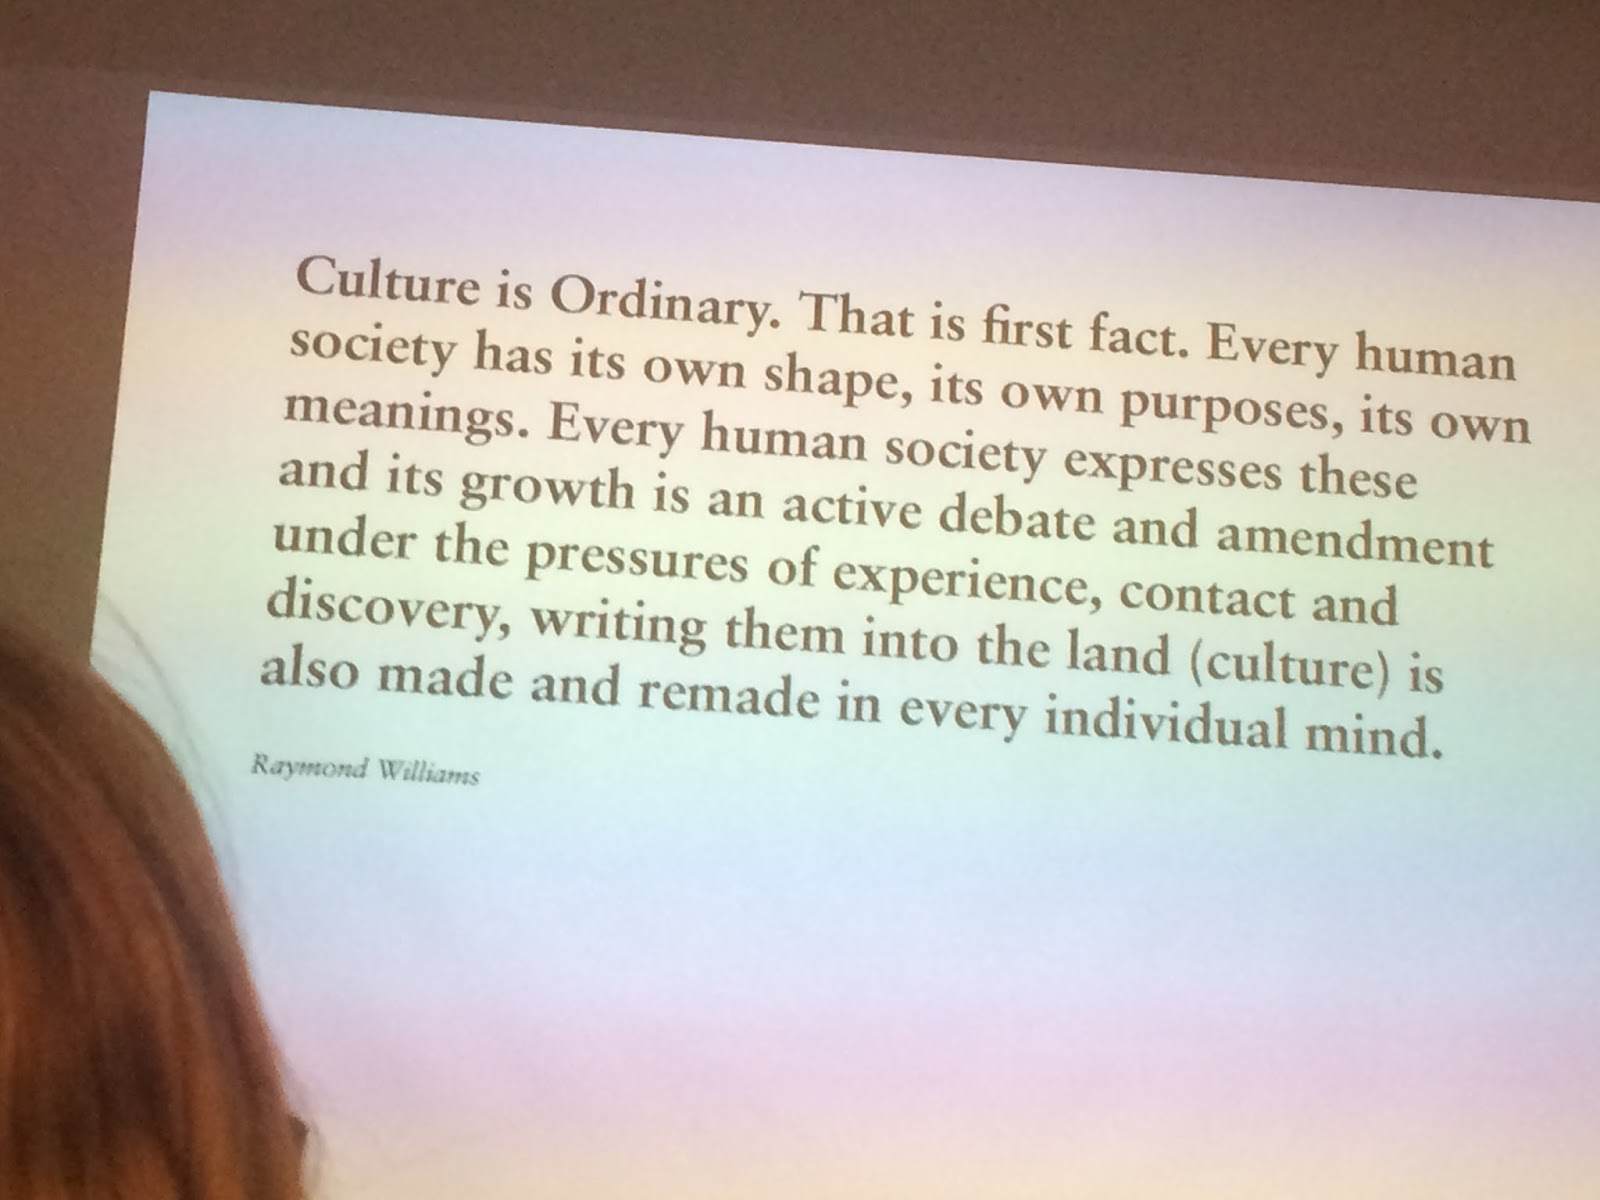 culture is ordinary essays Bill schnupp abstract: raymond williams' culture is ordinary i summary williams opens his piece with a short account of revisiting his childhood home in wales, accompanied by a brief recollection of his personal history—a rhetorical strategy he employs with frequency in the piece, and not unlike what we saw in miller's work.